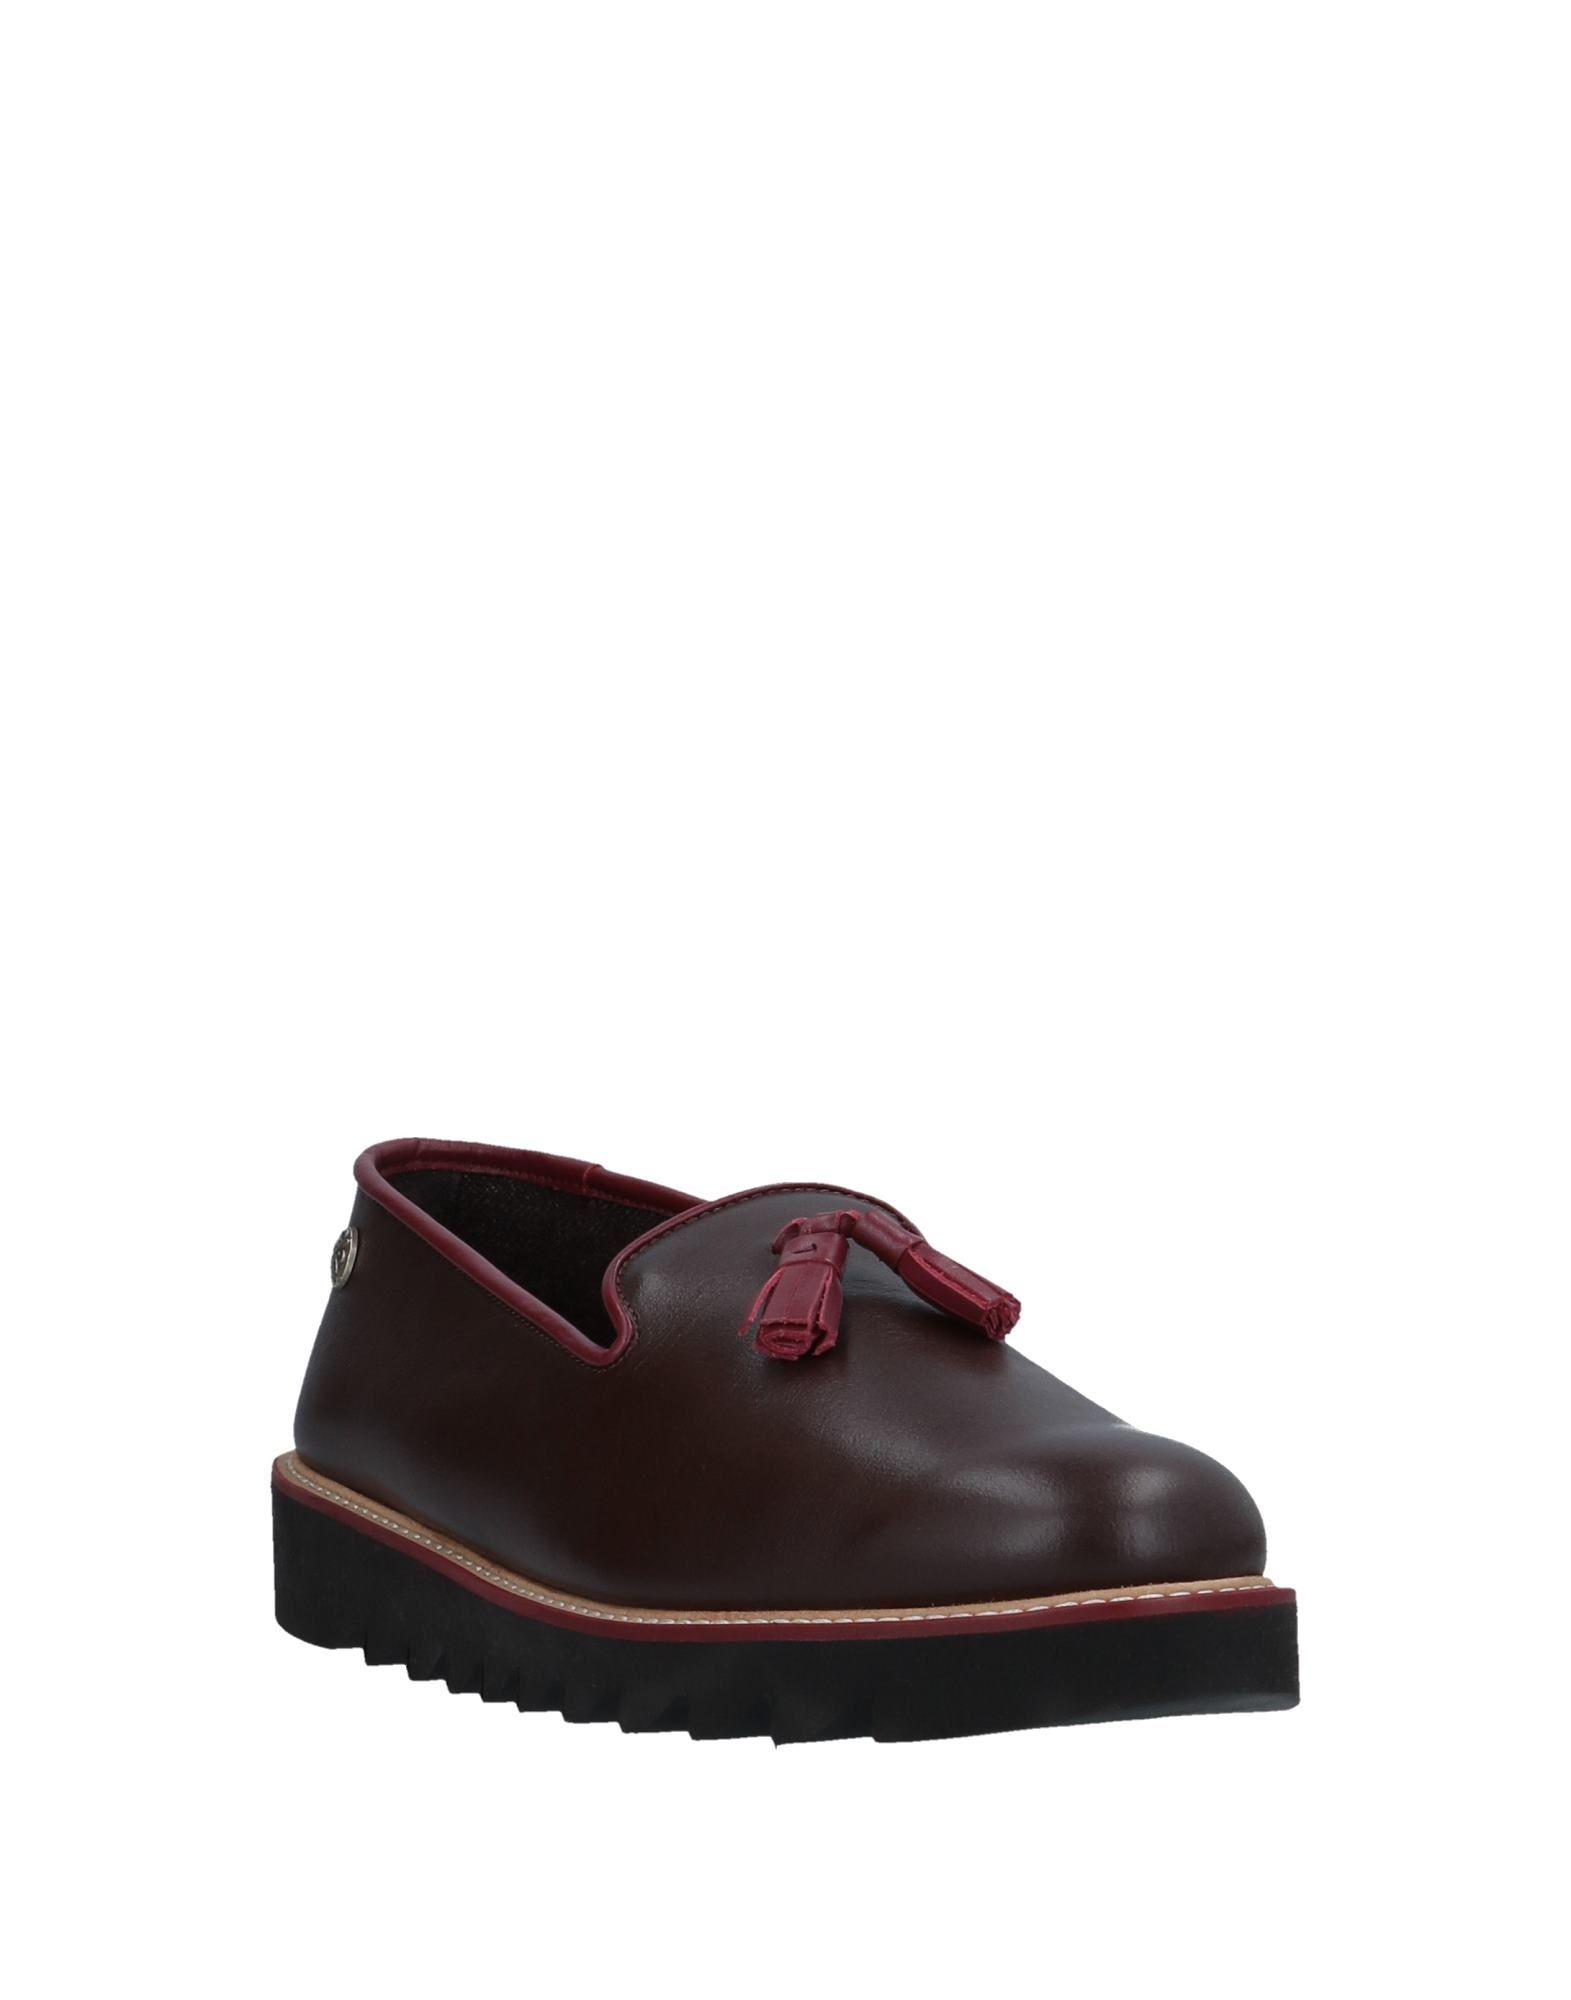 ( Verba ) Leather Loafer in Cocoa (Brown) for Men